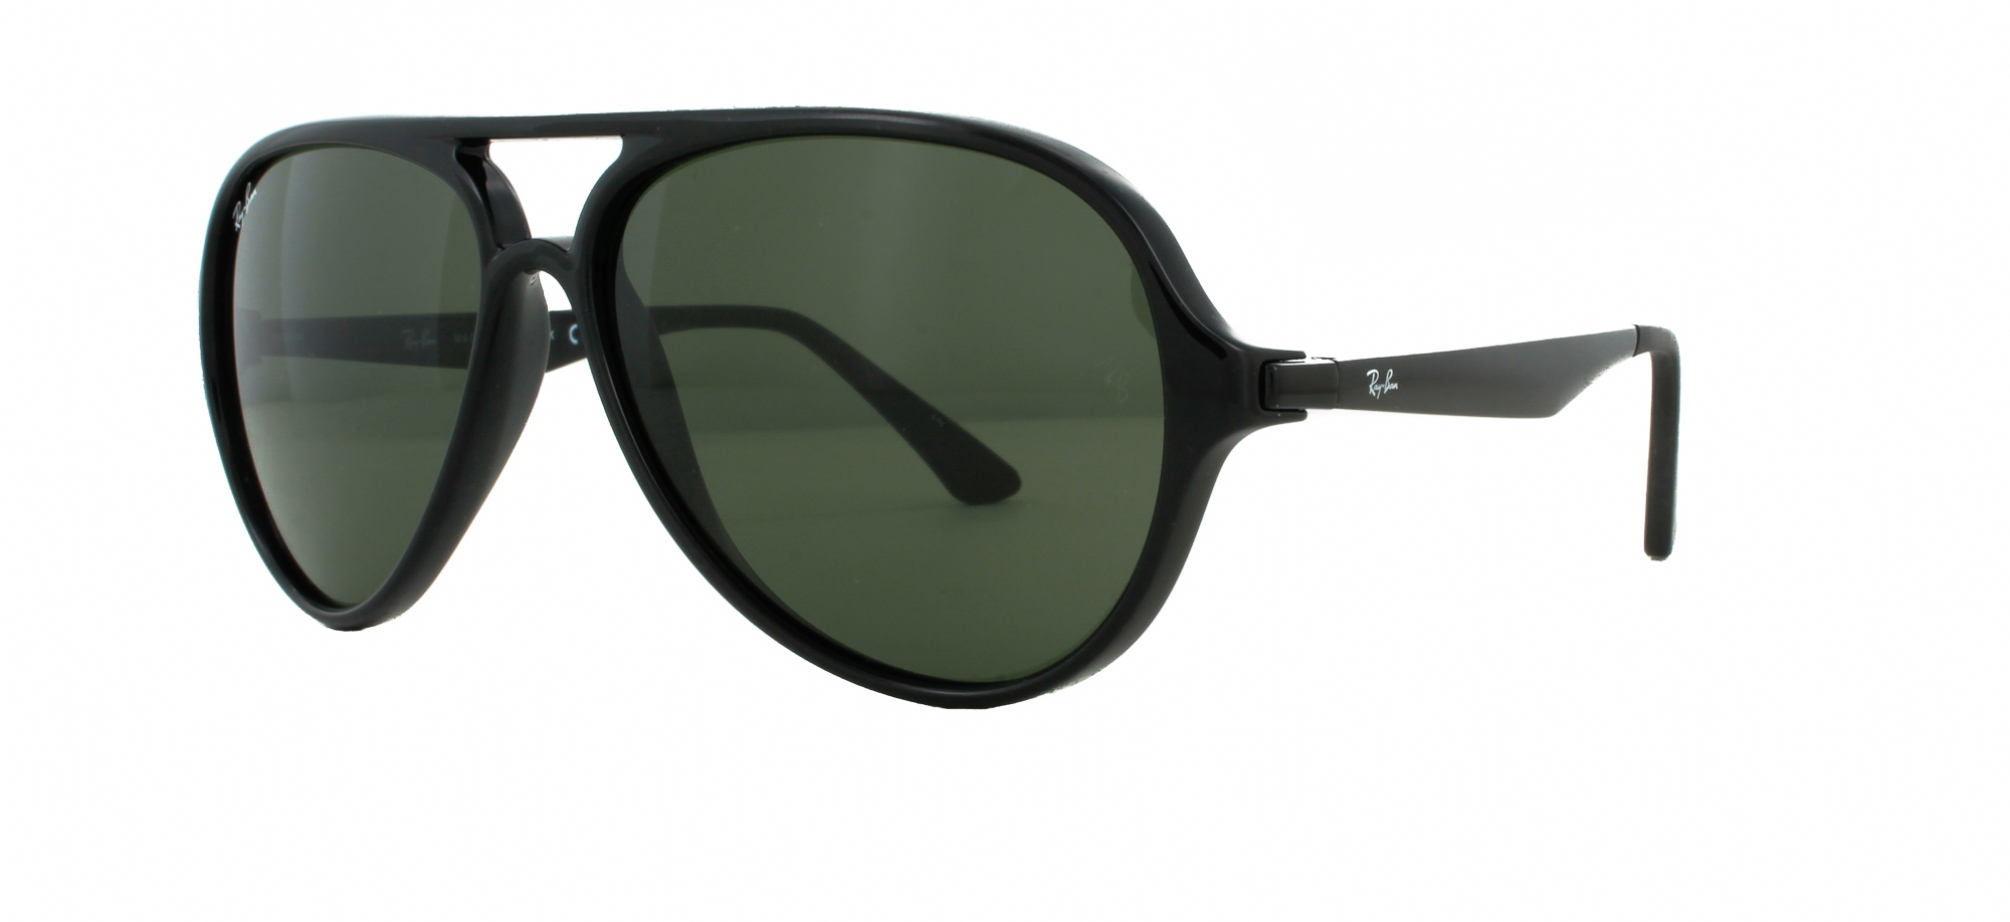 a089648d981 Ray Ban 4235 Sunglasses